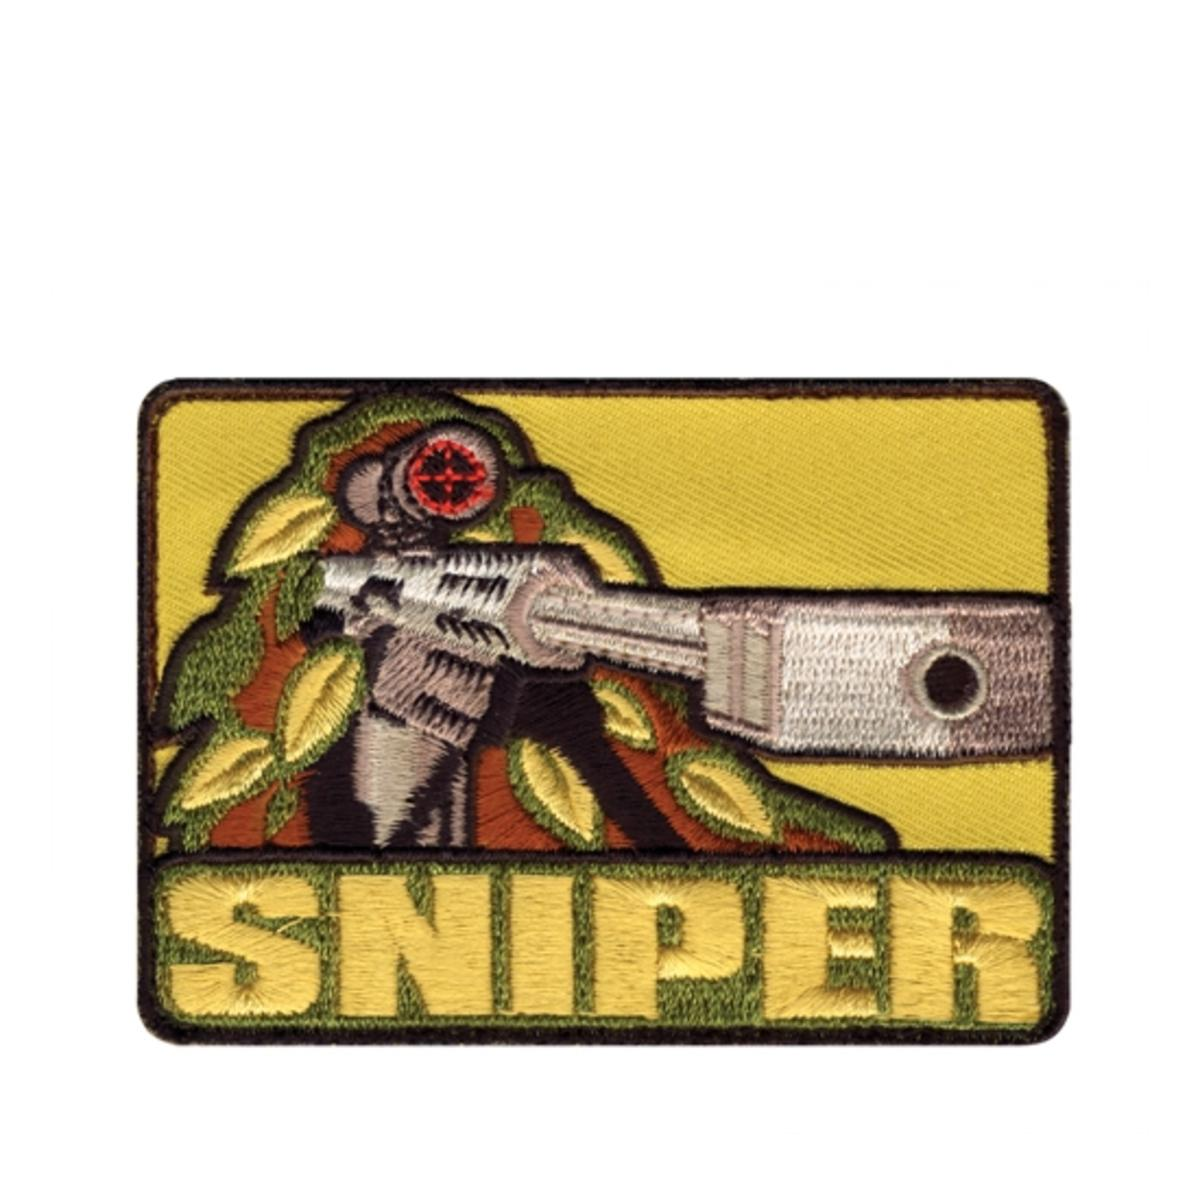 "Rothco Sniper 2.5"" x 3.5"" Embroidered Patch with Hook Backing"